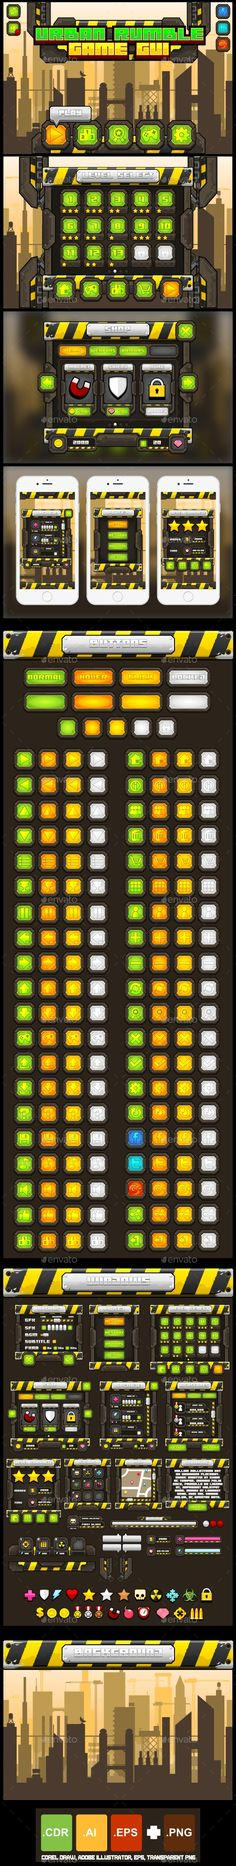 Urban Rumble - Game GUI - User Interfaces #Game Assets Download here:  https://graphicriver.net/item/urban-rumble-game-gui/15872260?ref=alena994